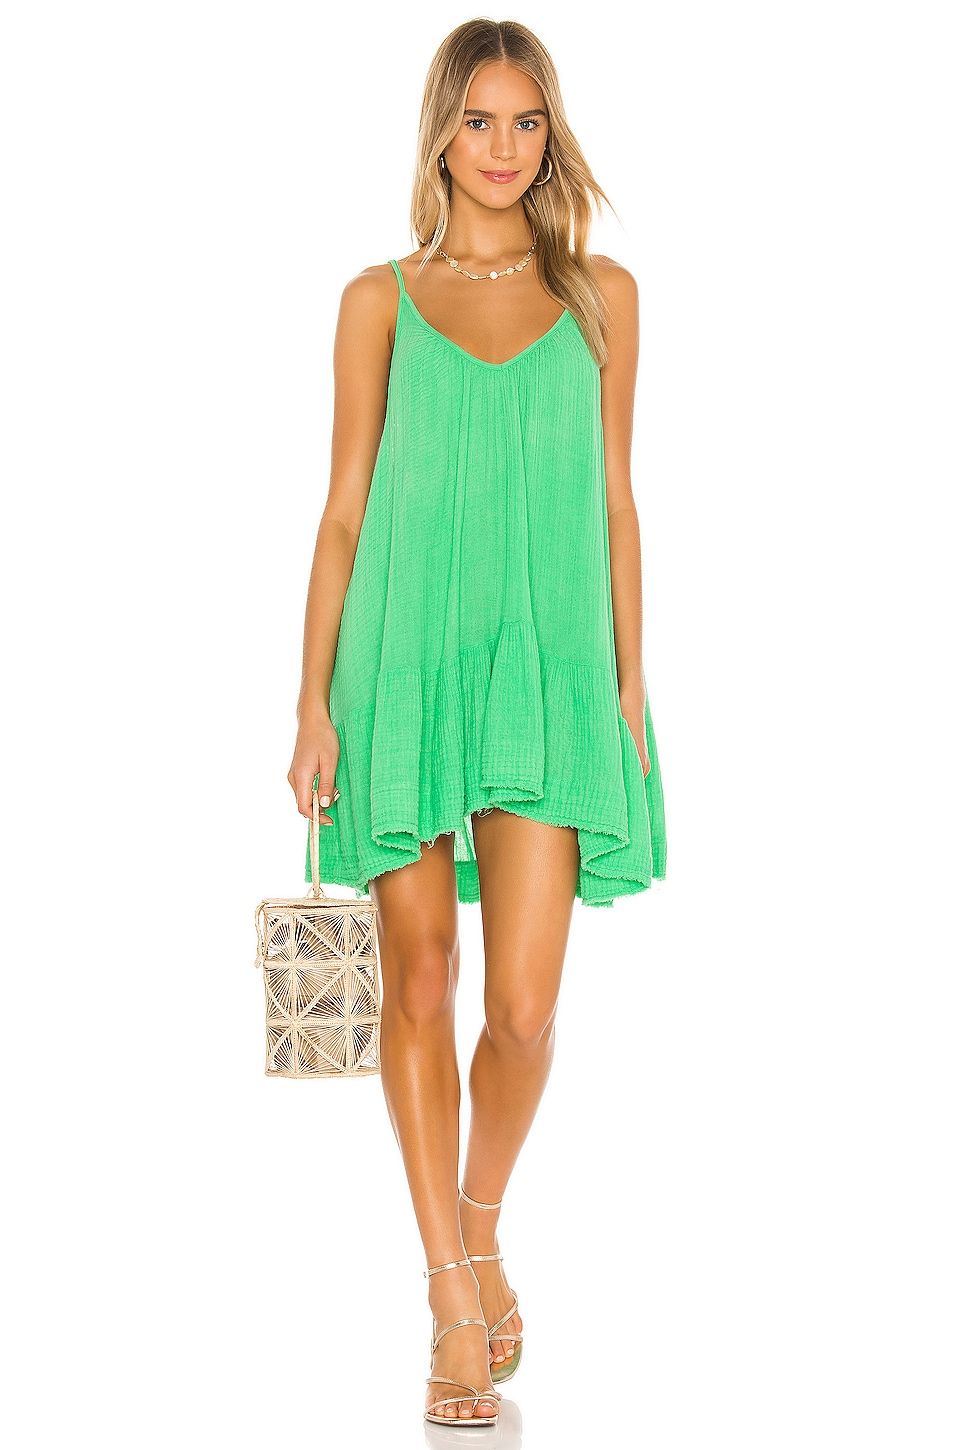 St Tropez Ruffle Mini Dress             9 Seed                                                                                                       CA$ 209.51 1